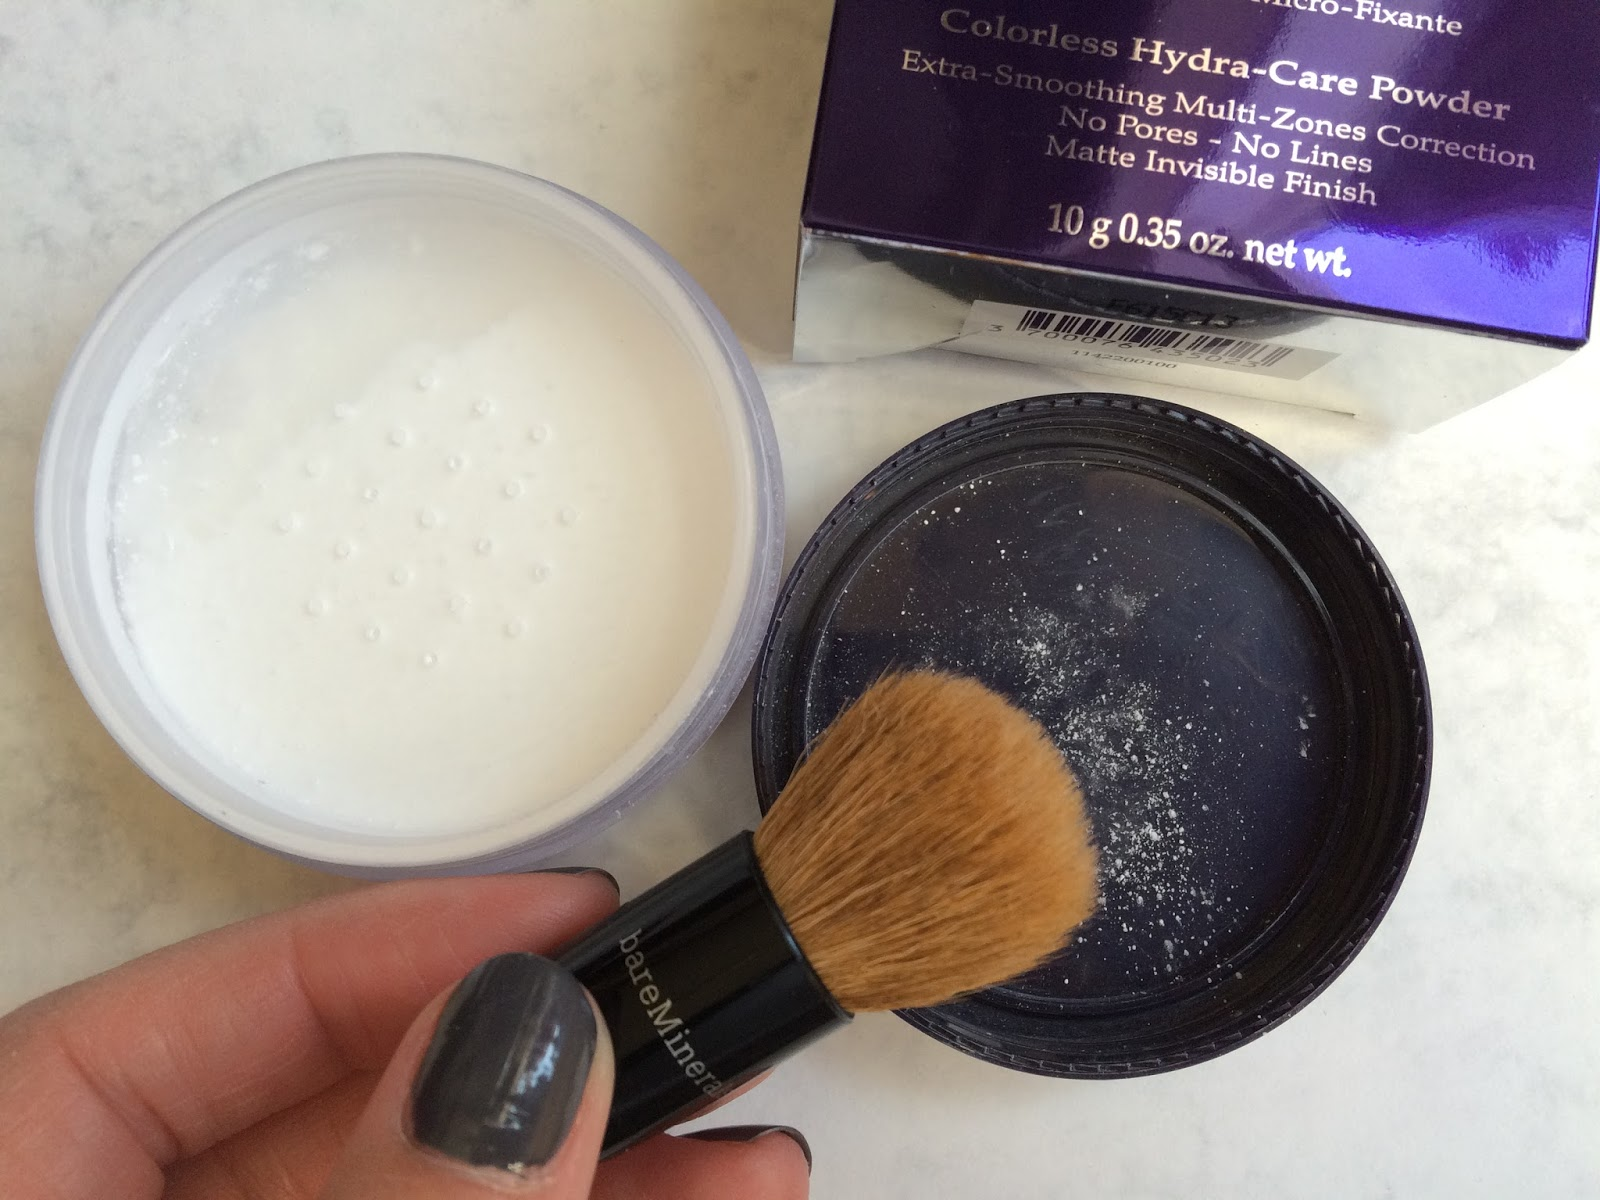 By Terry hyaluronic hydra-powder review